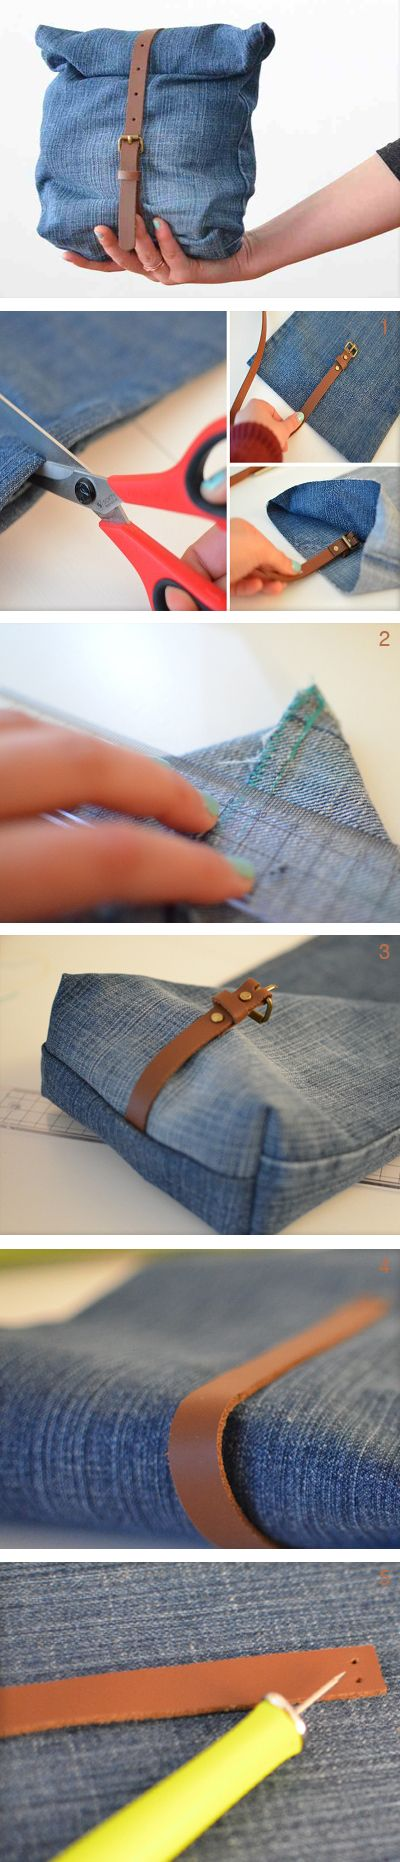 Adding a belt as a strap.       Gloucestershire Resource Centre http://www.grcltd.org/scrapstore/